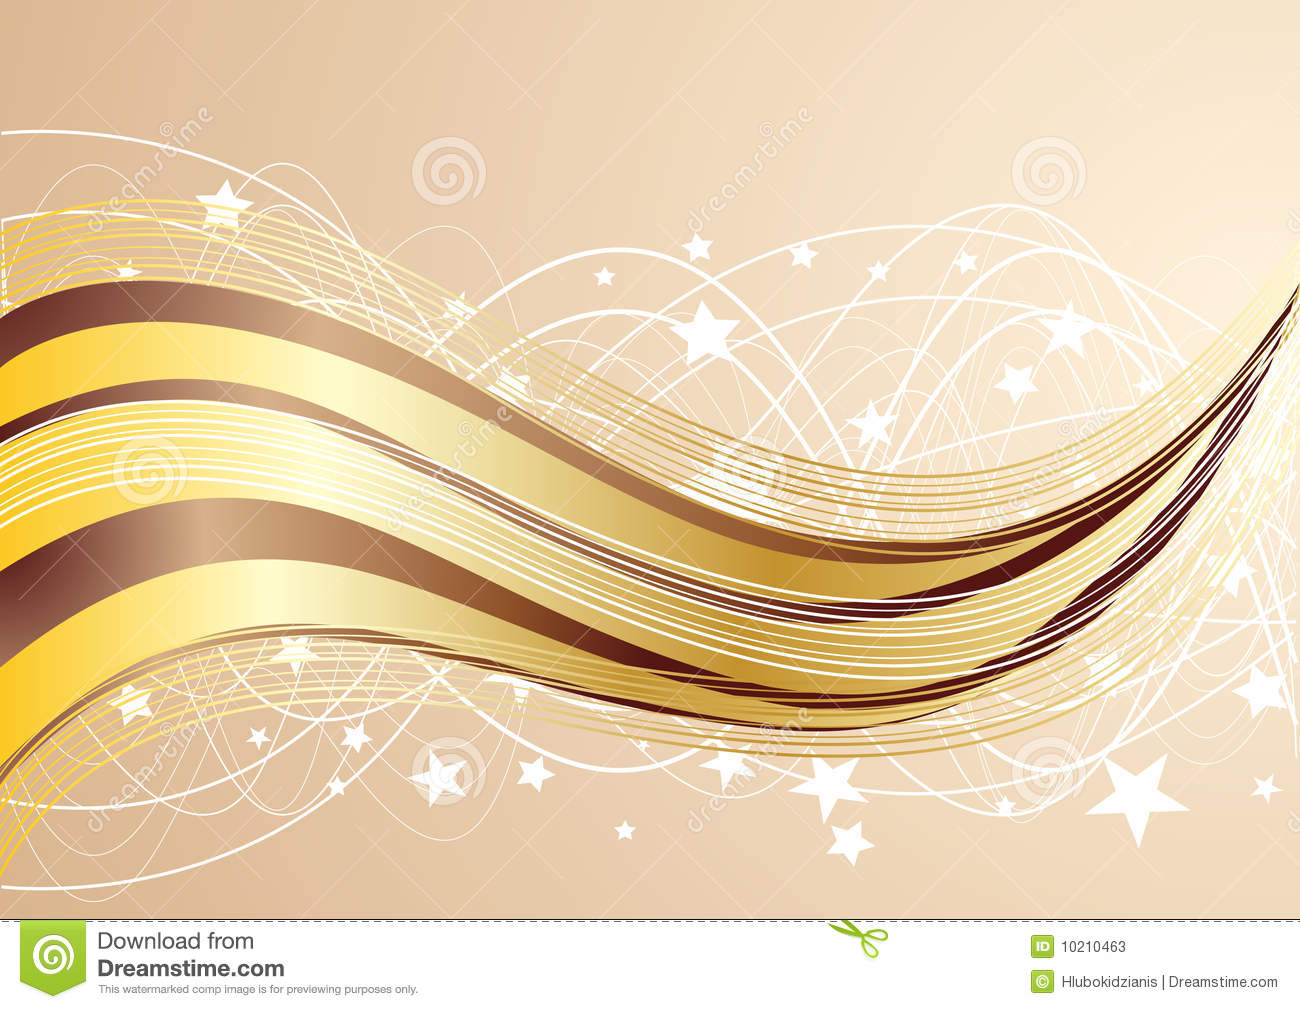 vector chocolate background stock vector illustration of line motion 10210463 dreamstime com